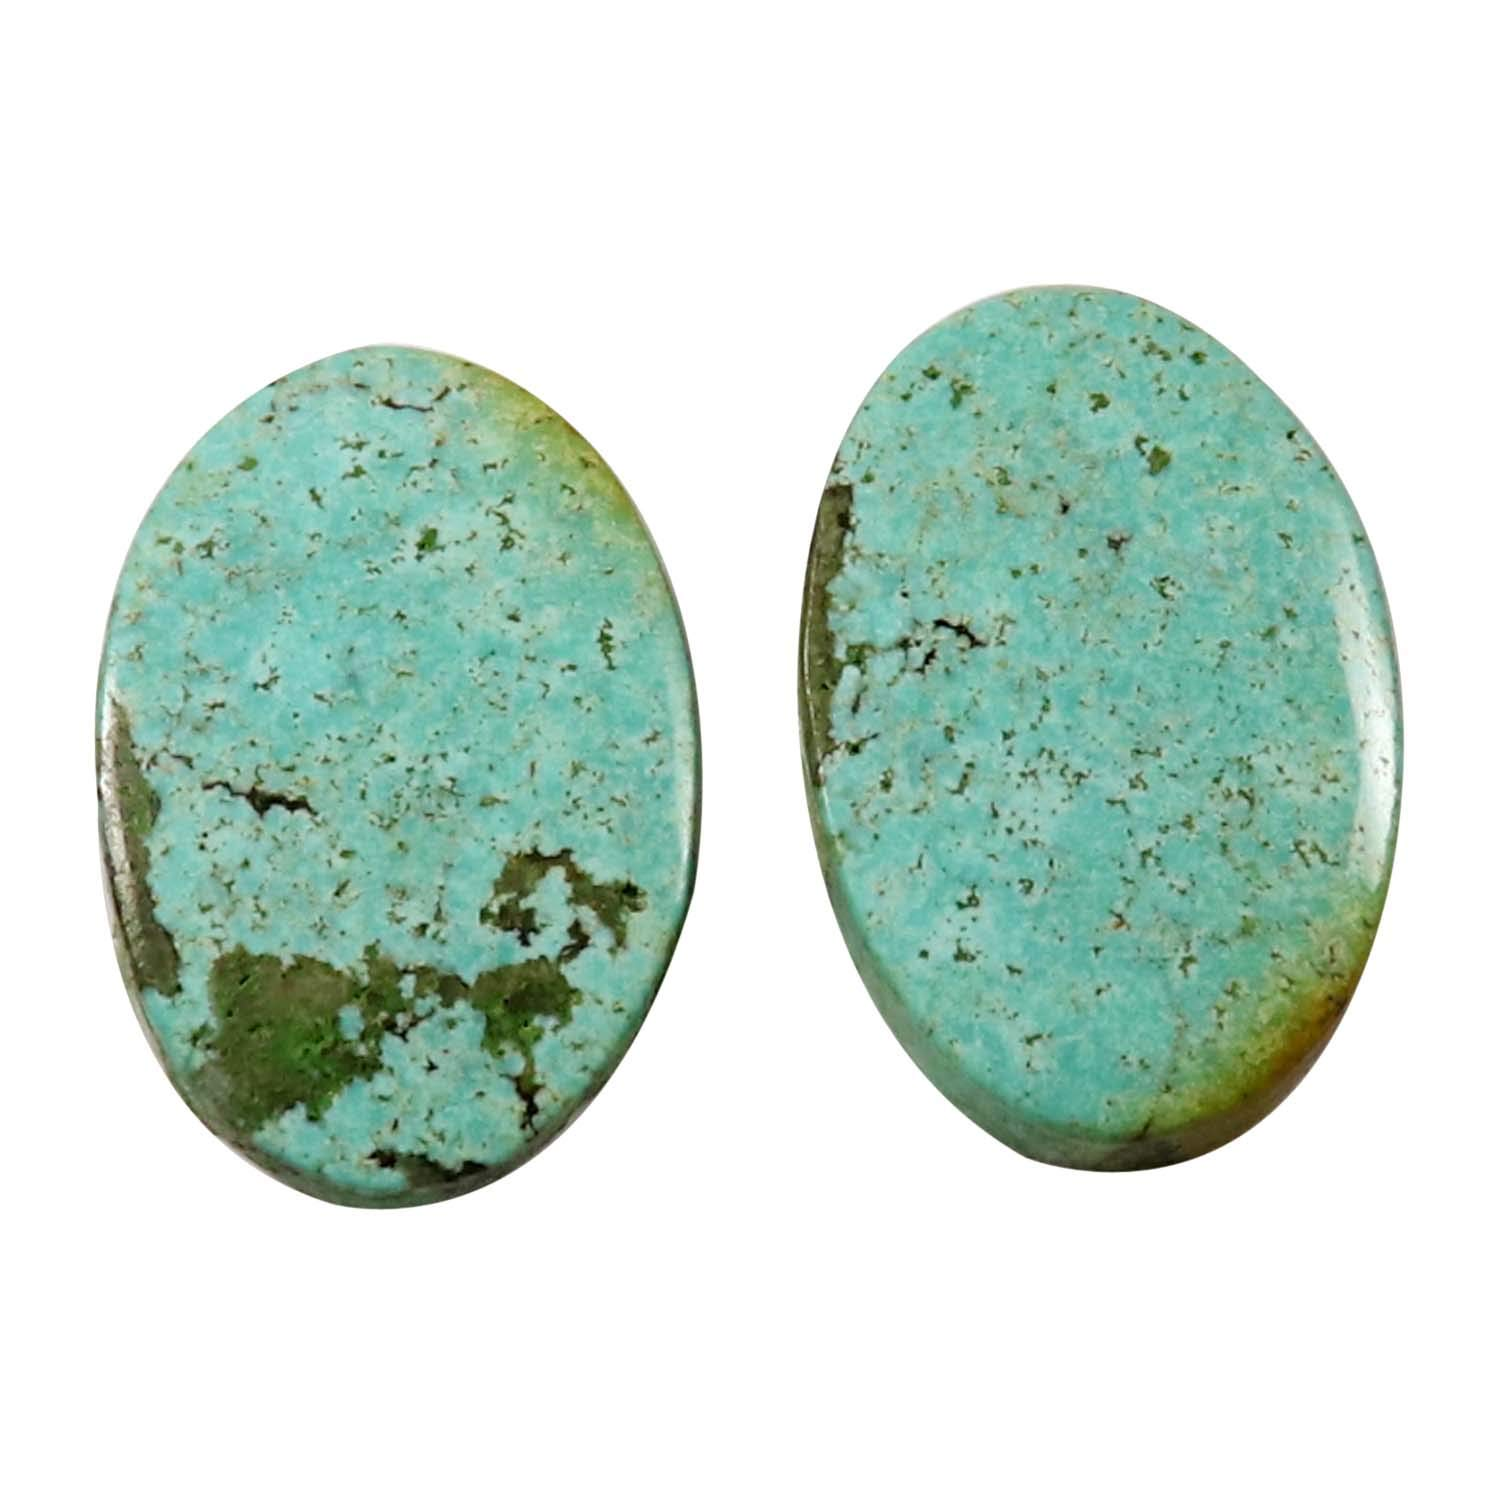 A Natural Tibet Turquoise Oval Collection Loose Gemstone